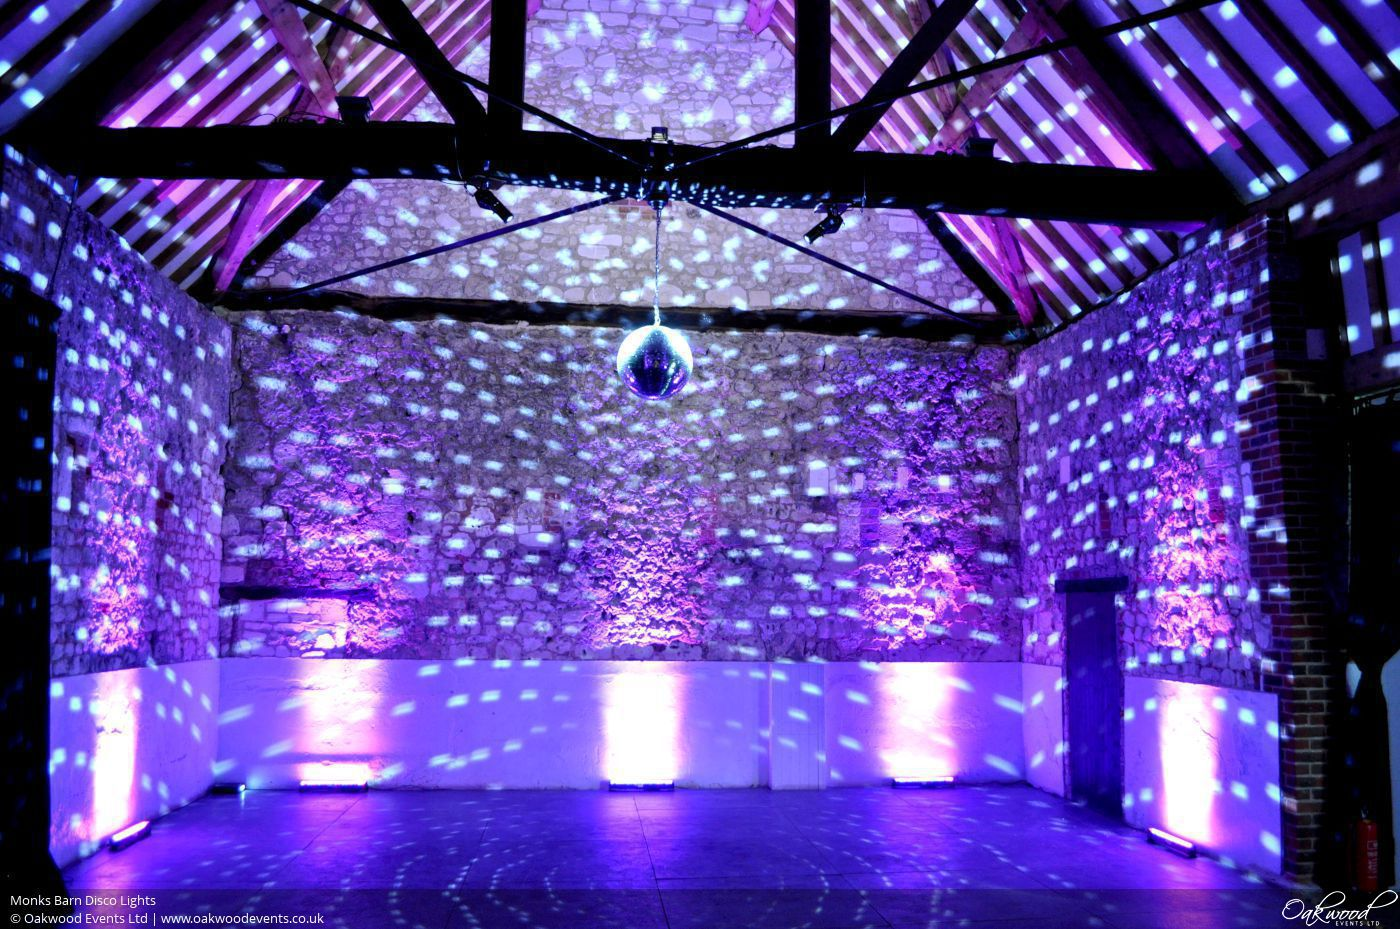 Monks Barn Disco Lights